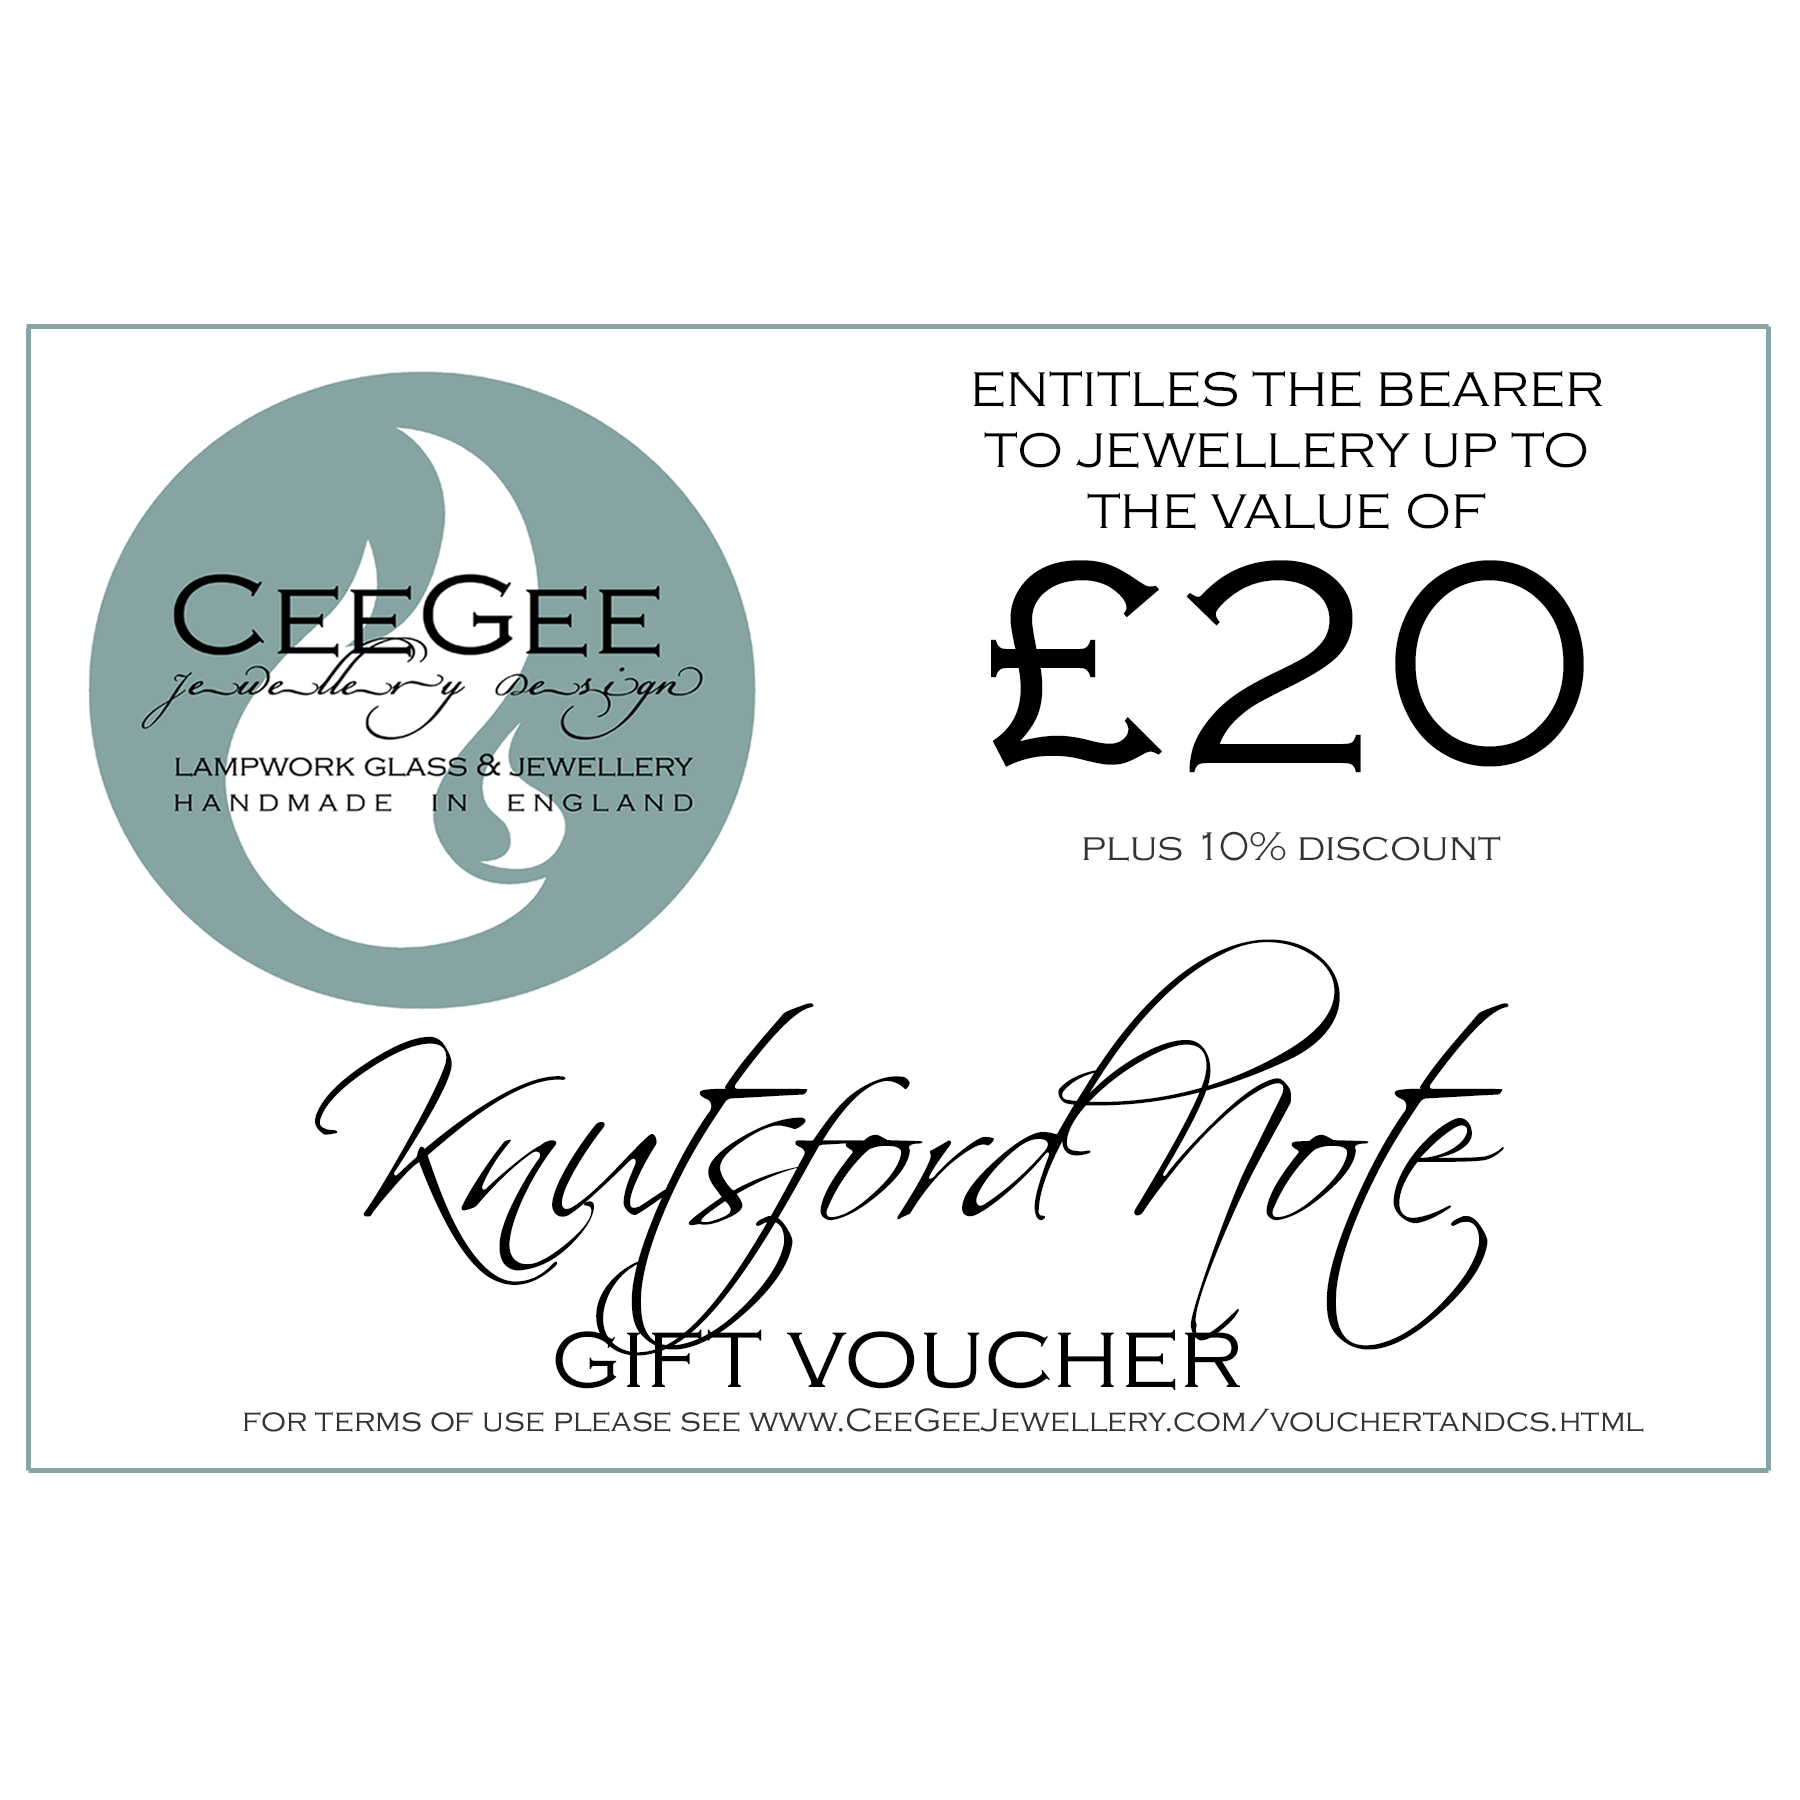 Knutsford Note Gift Voucher